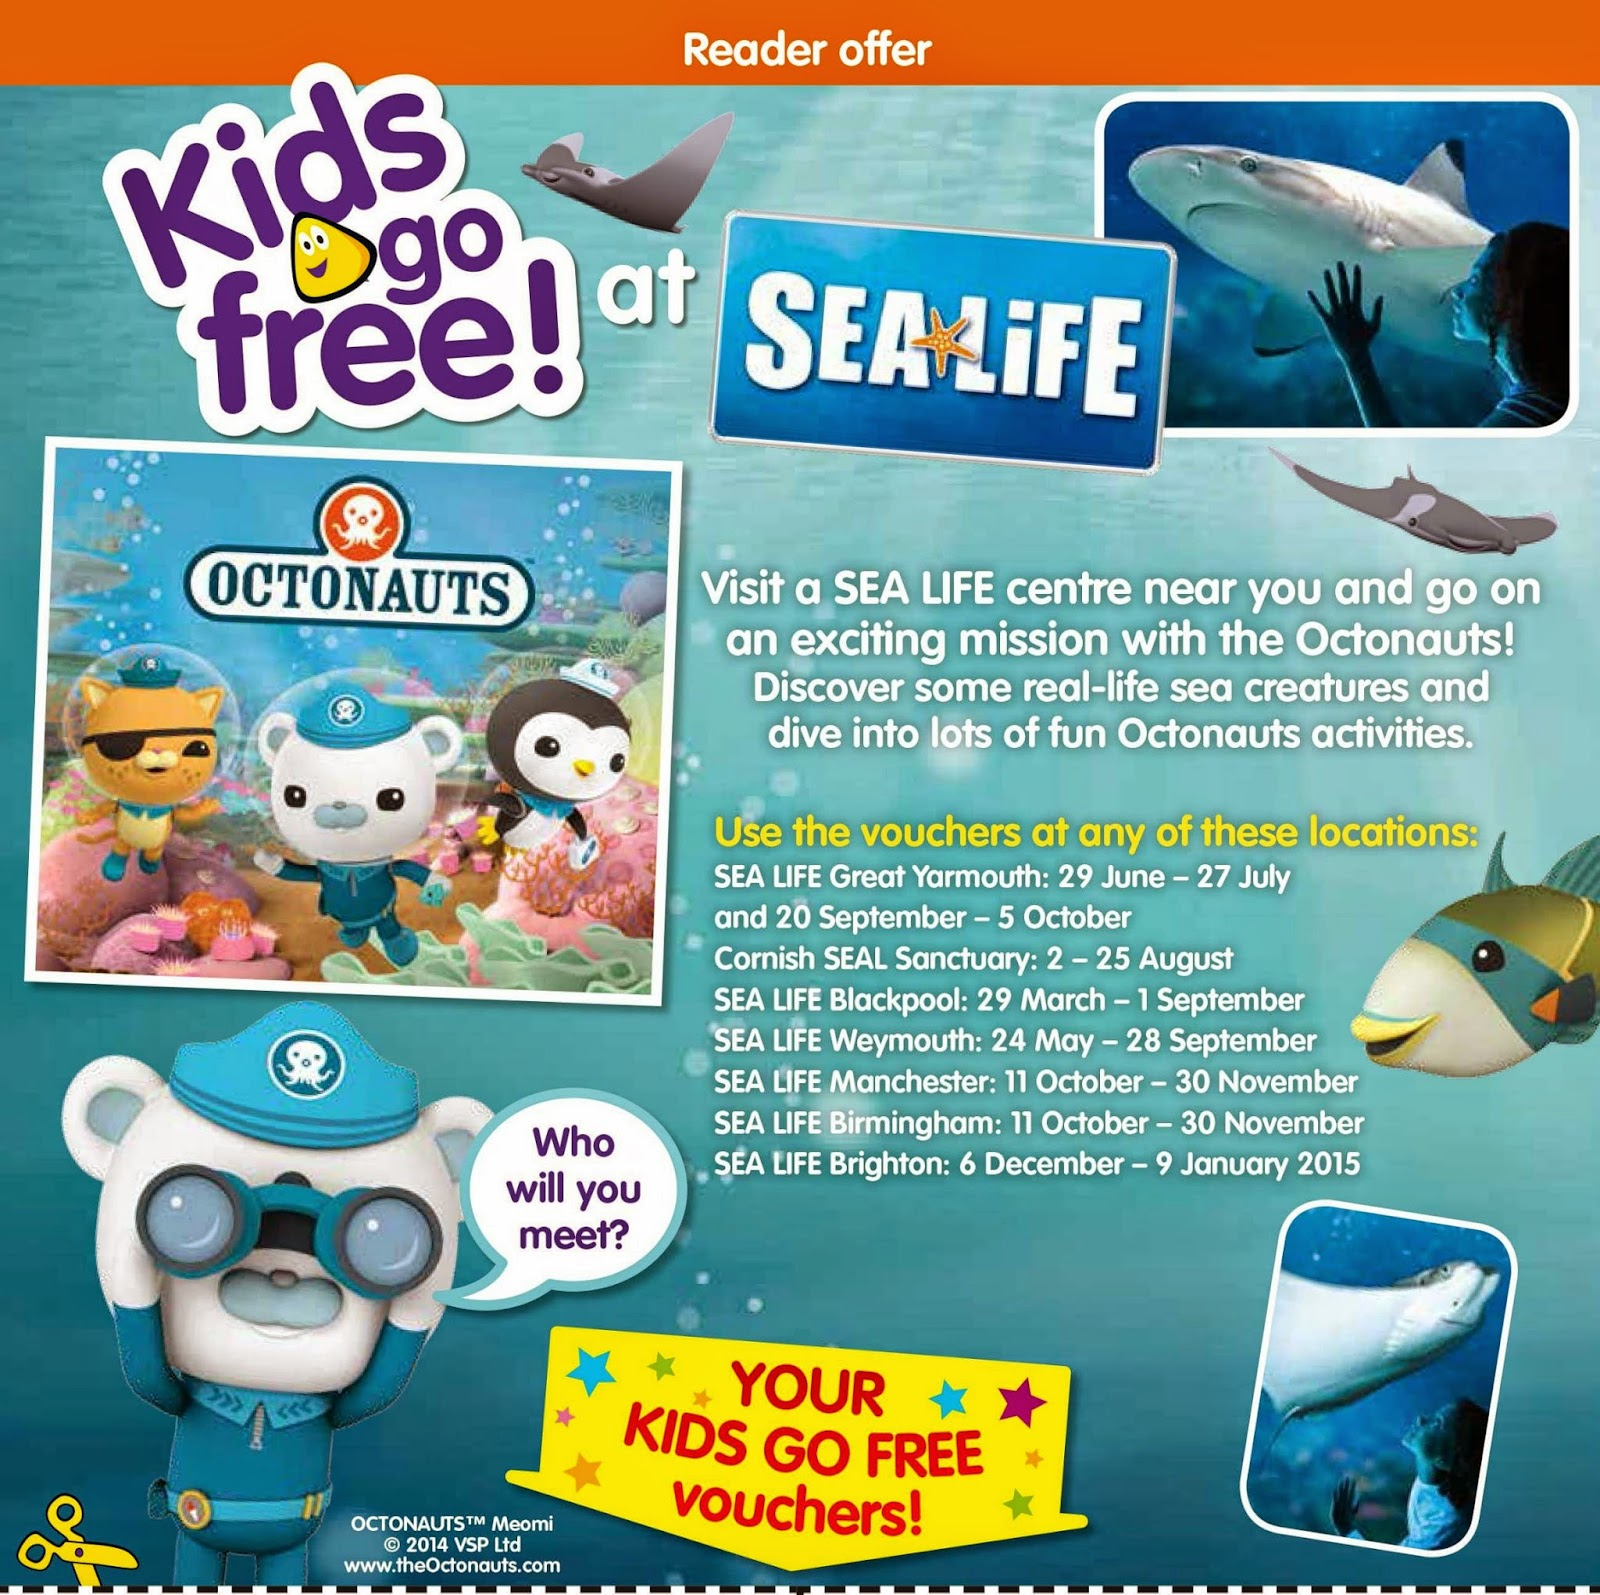 CBeebies Magazine, Merlin Entertainments, #CBeebiesMagKidsGoFree